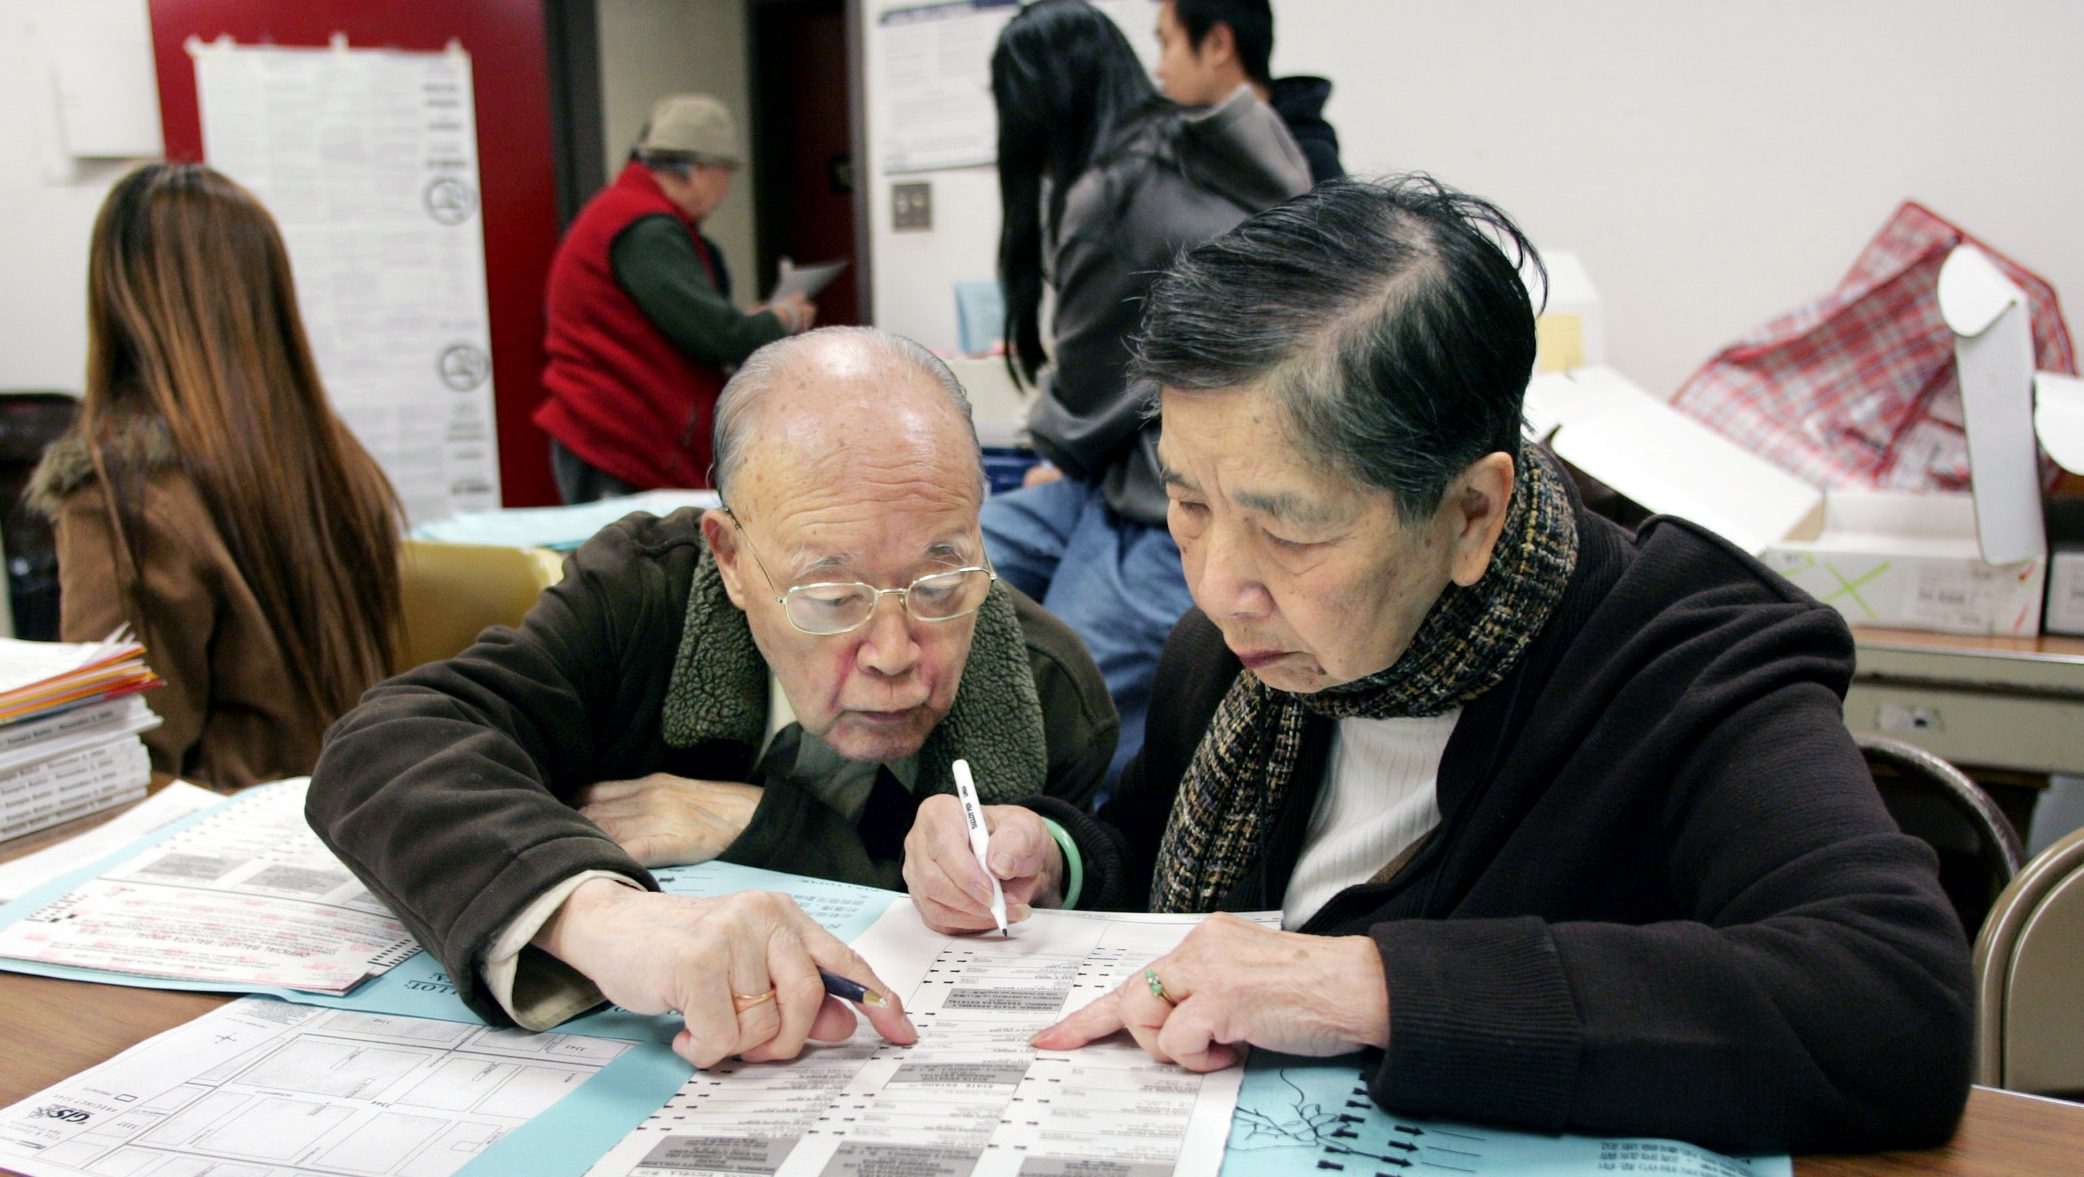 A Chinese-American couple sit down at a table to fill out their election ballot at polling station in the Chinatown section of San Francisco, November 2, 2004. [Voters turned out in large numbers on Tuesday to deliver an unpredictable verdict on U.S. President George W. Bush and Kerry as the long, bitter and deadlocked White House race drew to a close. As many as 125 million Americans were voting to choose their leader for the next four years and set the country's course on the Iraq war, the fight against terrorism, the economy and foreign relations.]